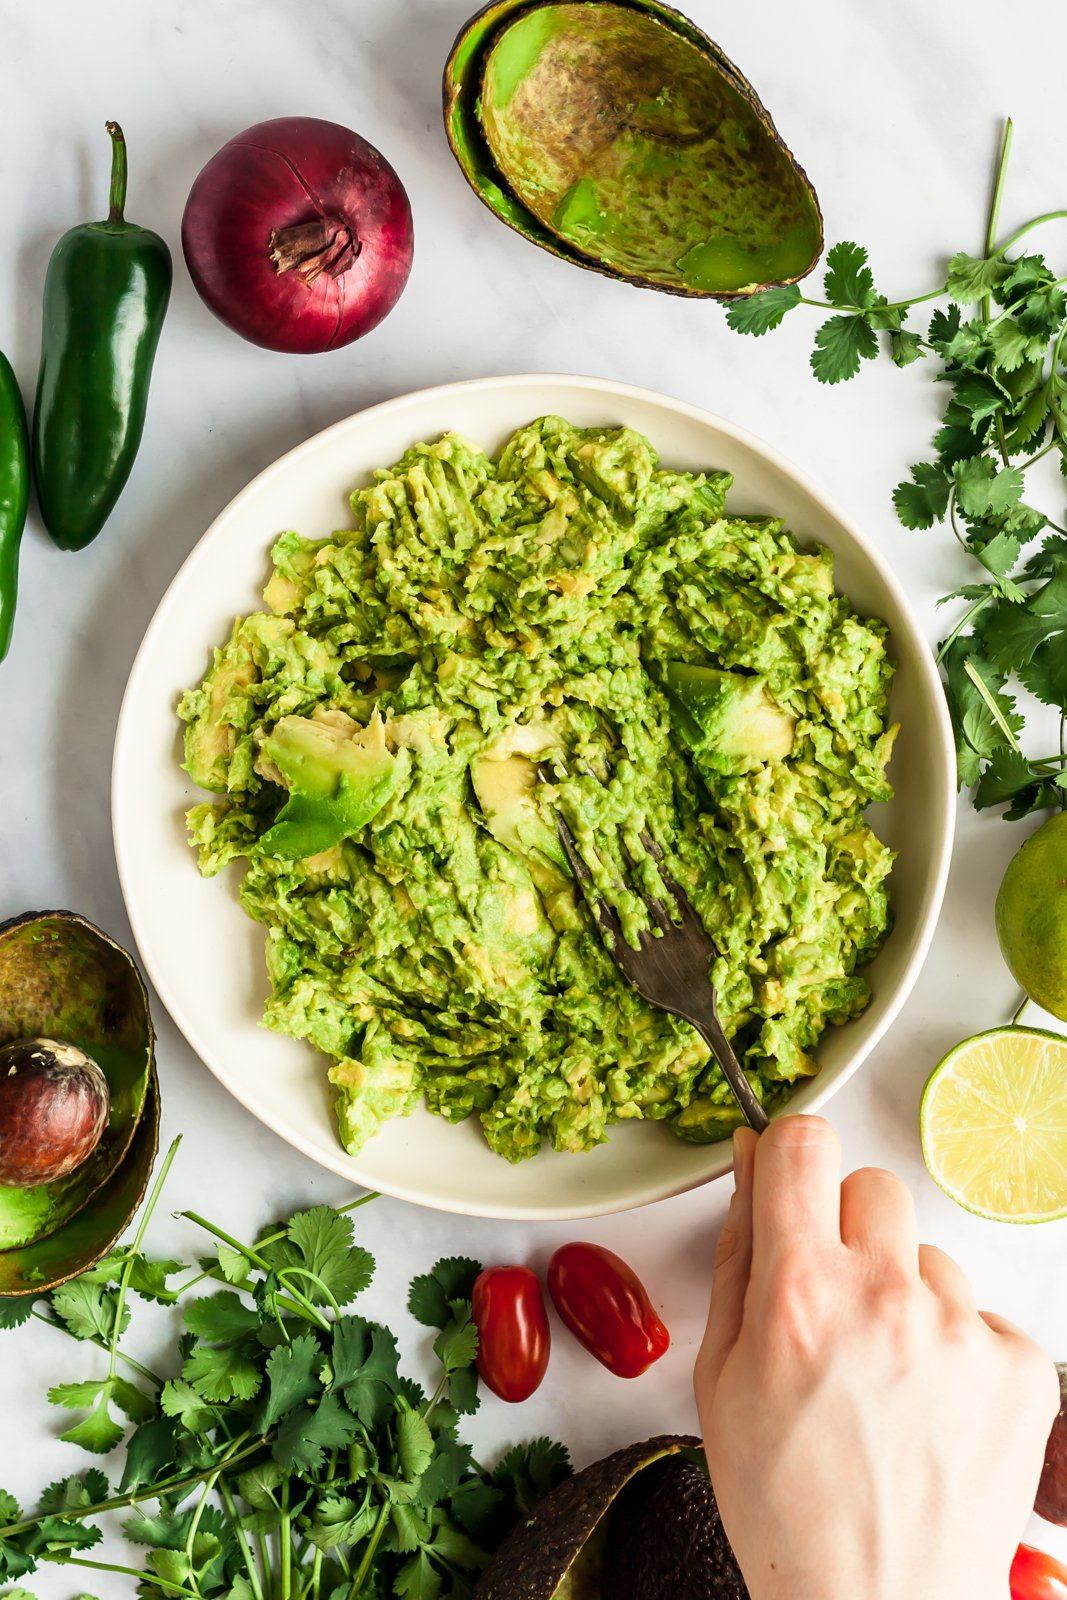 mashing avocado next to ingredients for the best guacamole